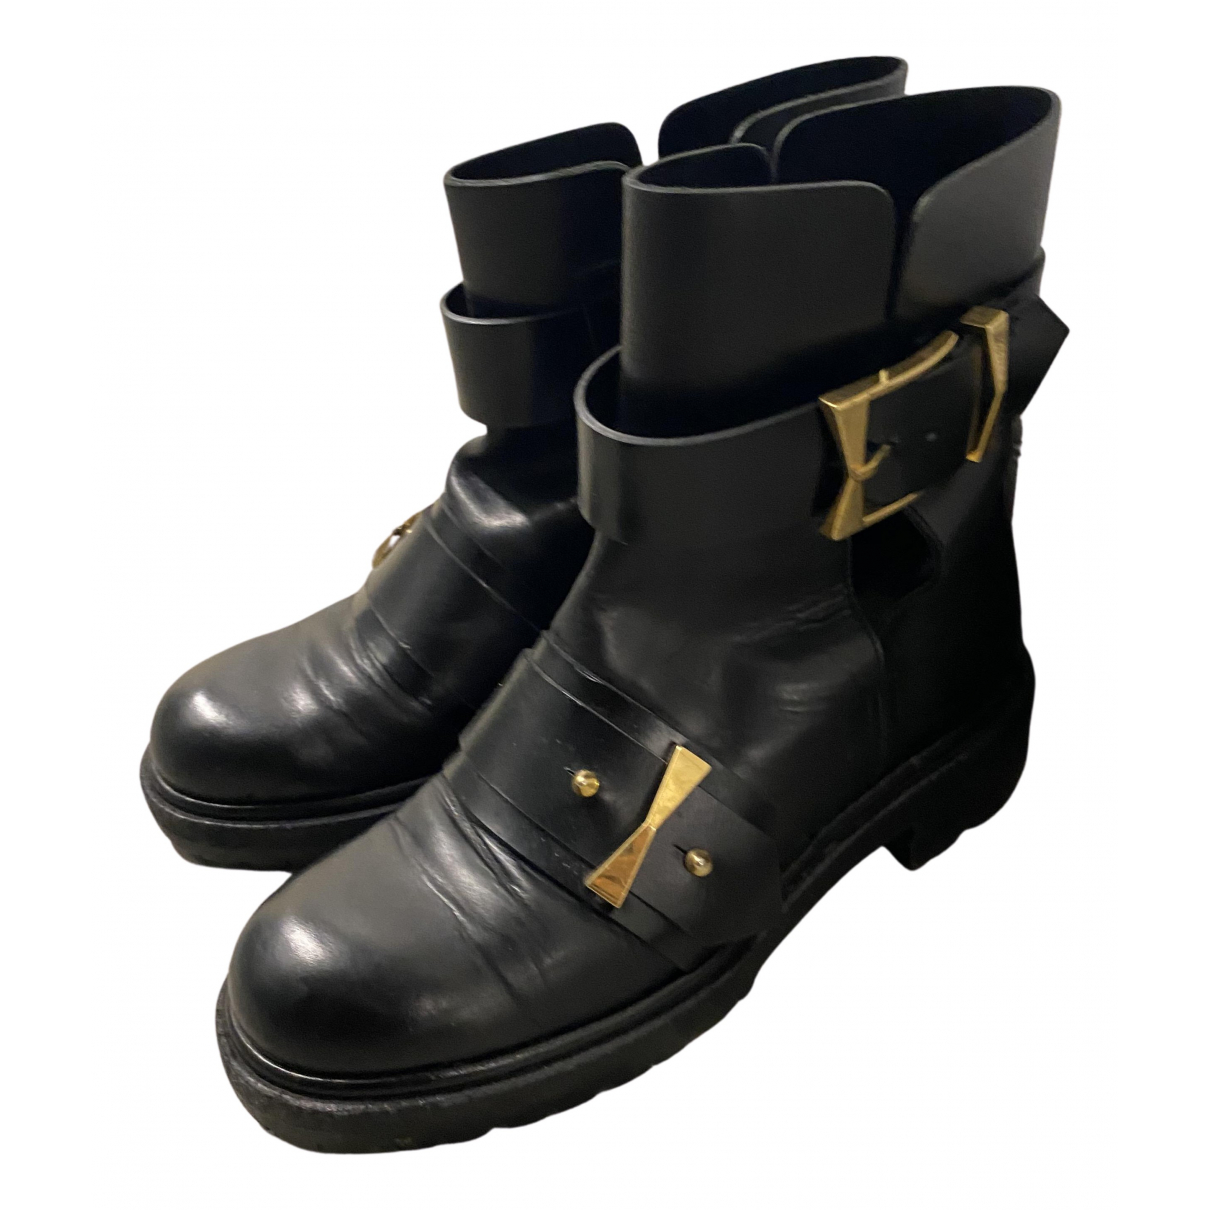 Alexander Mcqueen N Black Leather Ankle boots for Women 36 EU